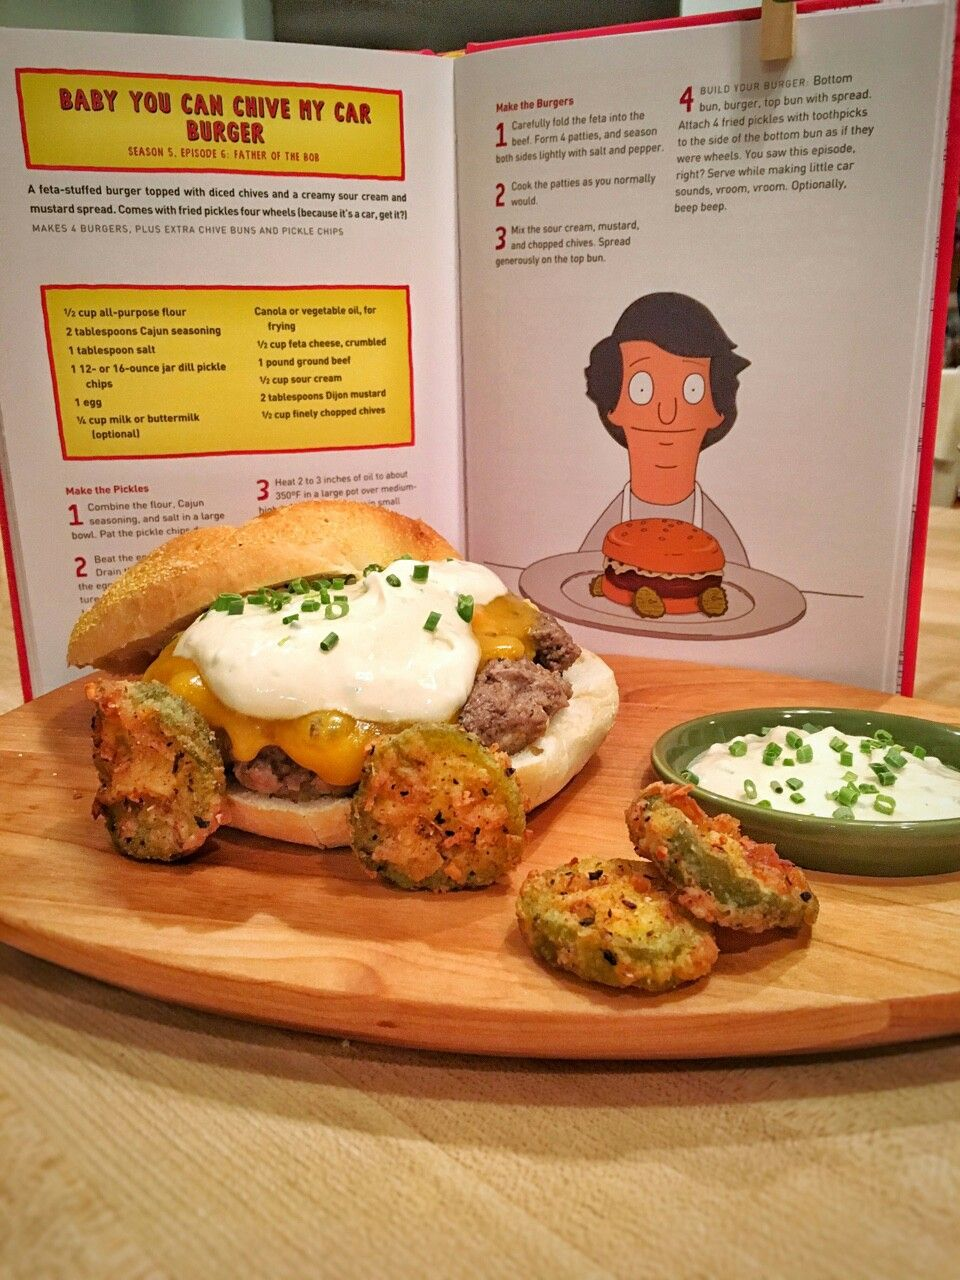 Bobs burgers burger of the day with cook book purchasable on bobs burgers burger of the day with cook book purchasable on amazon forumfinder Choice Image